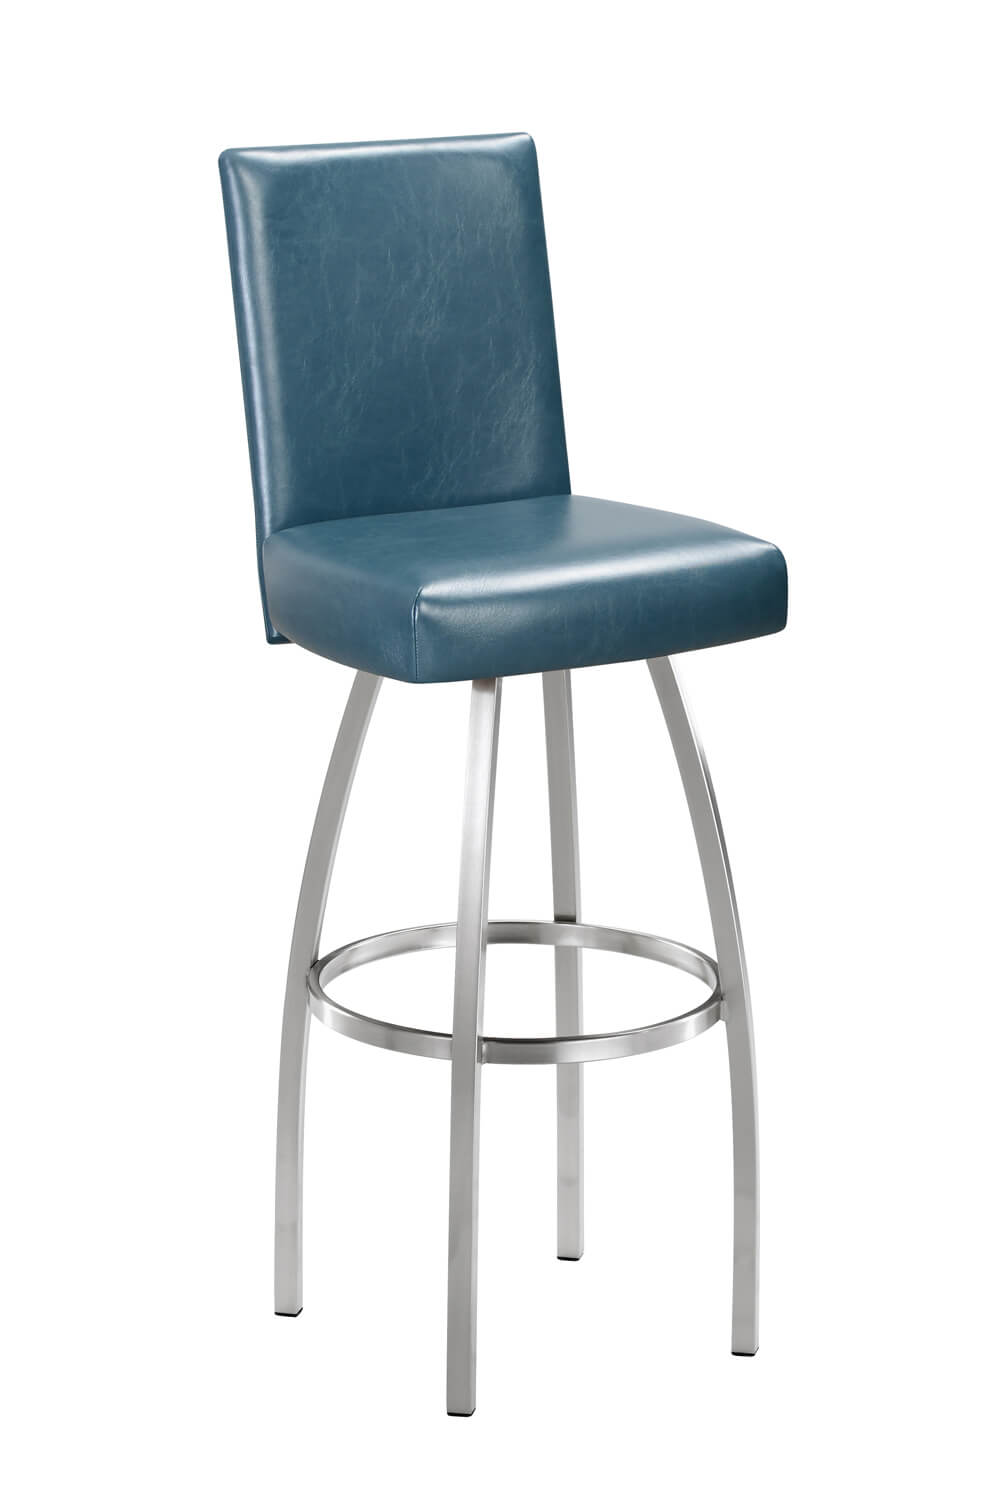 Super Nicholas Swivel Counter Stool Gmtry Best Dining Table And Chair Ideas Images Gmtryco